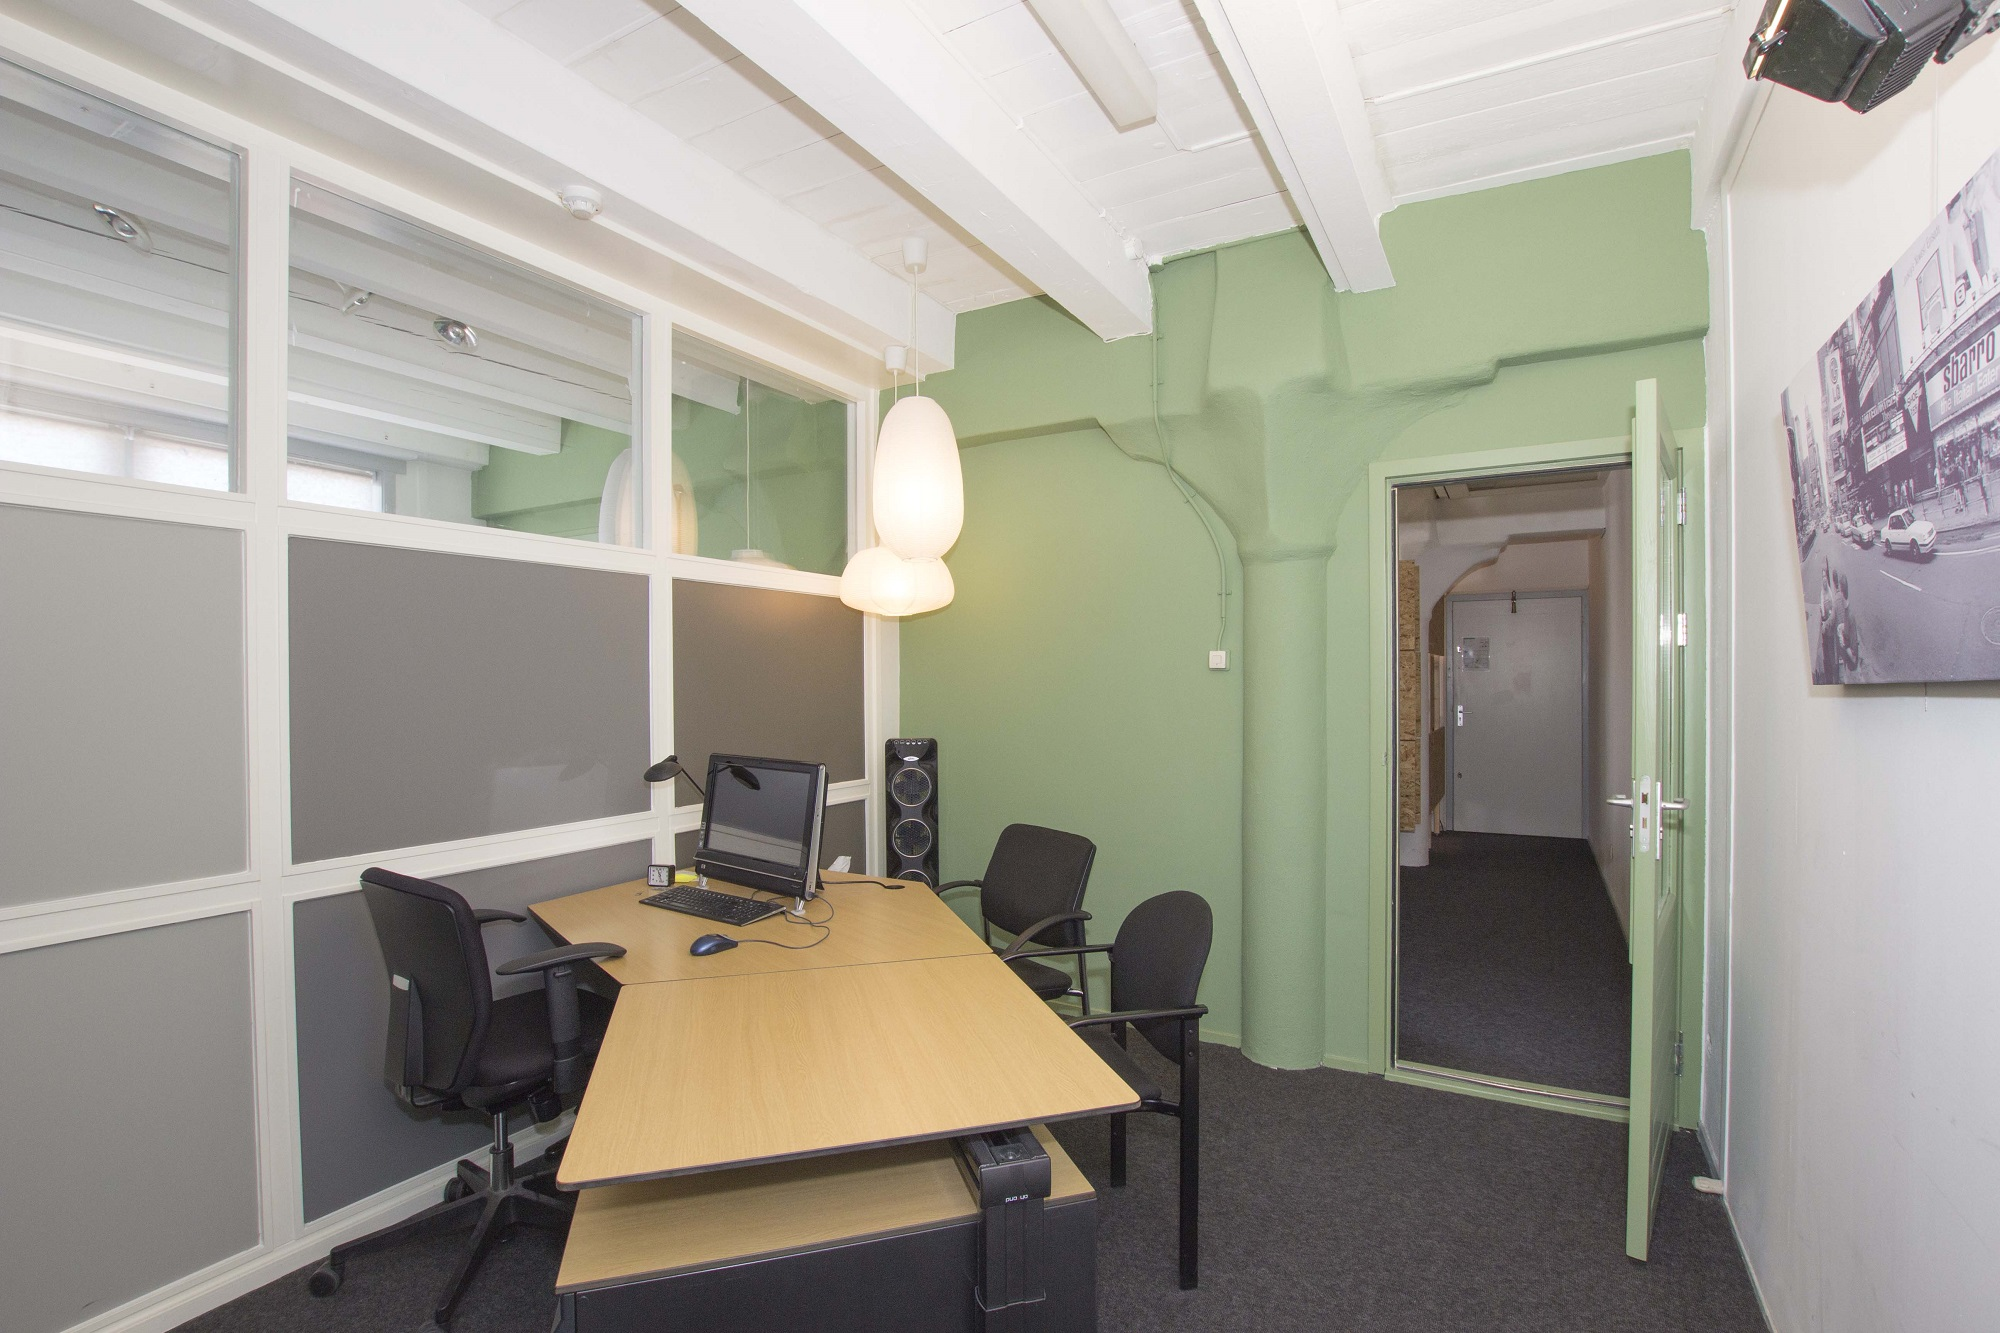 green wall own office room 69 m2